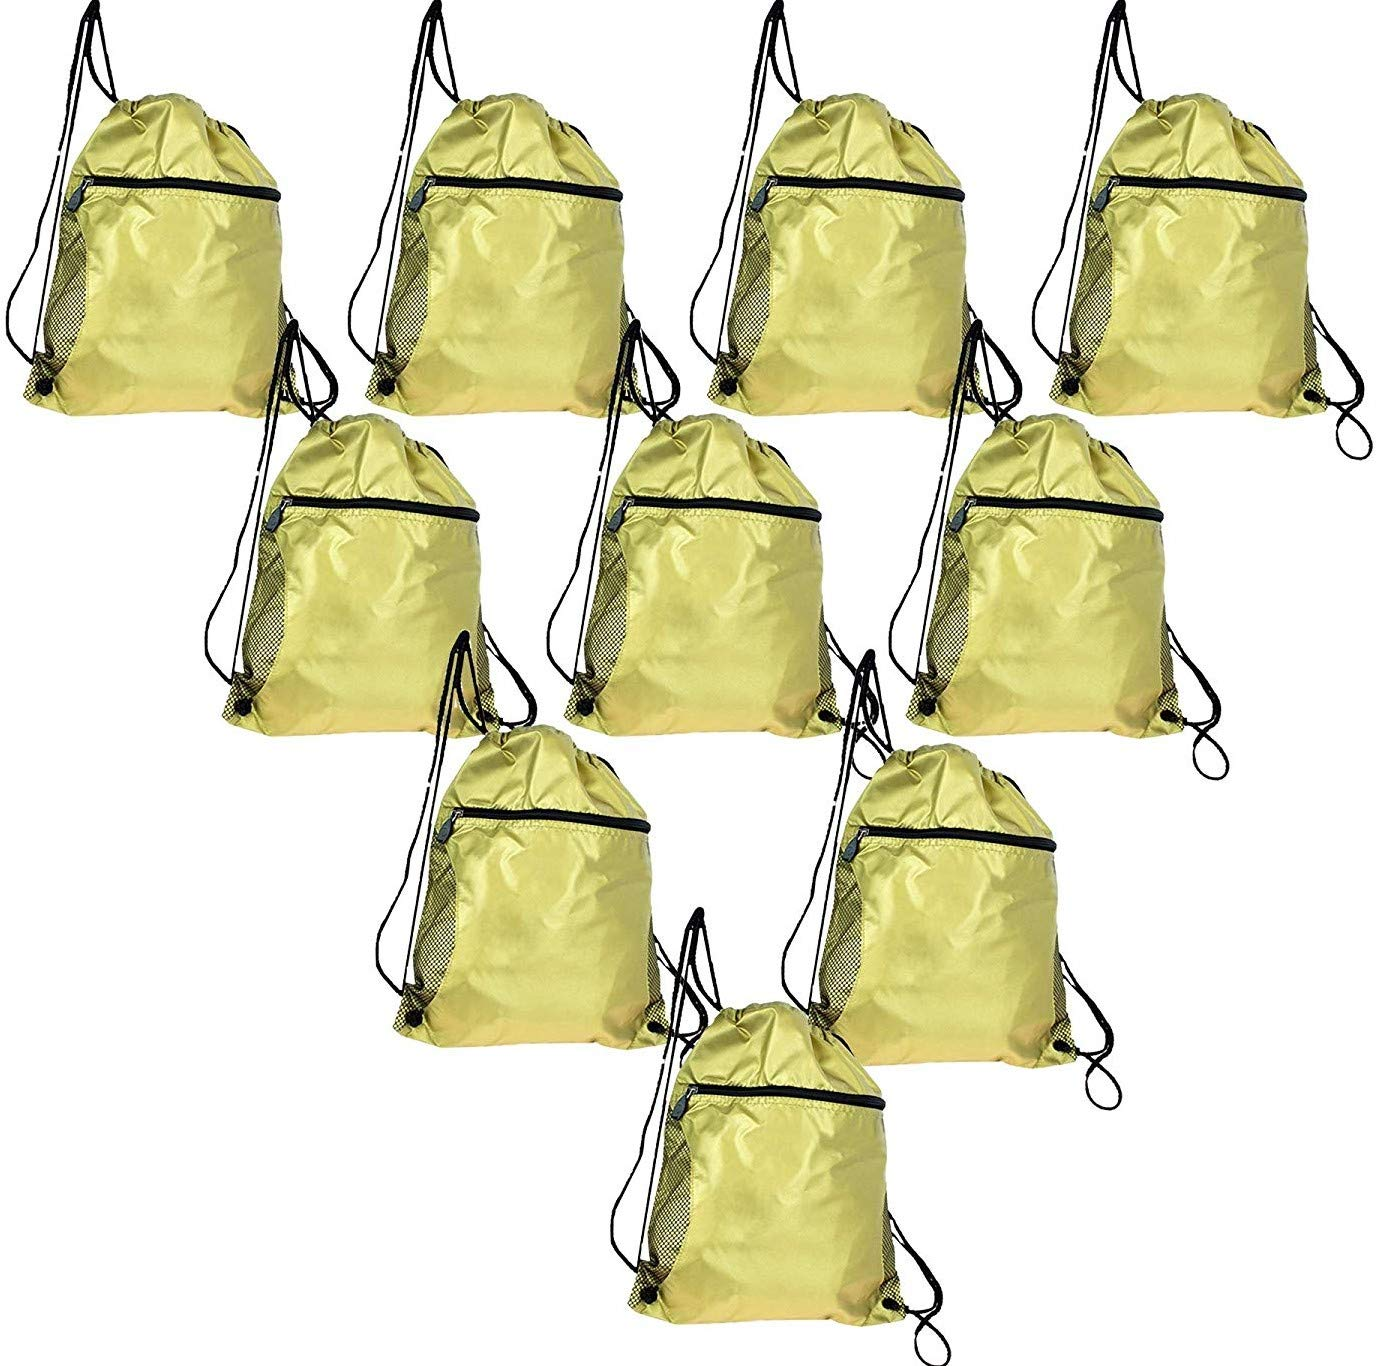 200 Pack - Bulk Case Drawstring Backpacks in Gold, Promotional Gym Sack Sport Cinch with Zipper Wholesale Bags